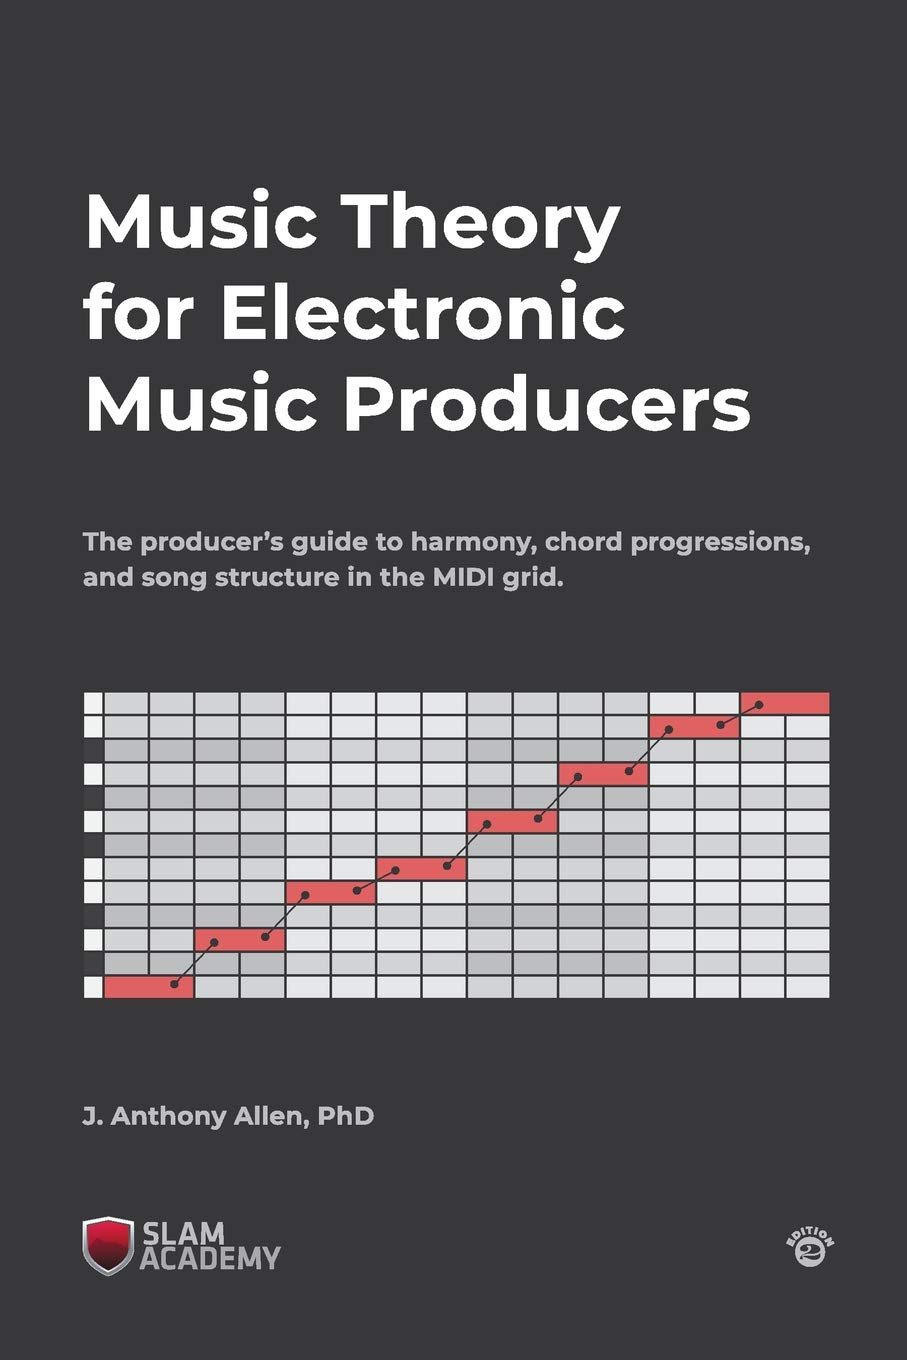 Music Theory For Electronic Music Producers  The Producer's Guide To Harmony Chord Progressions And Song Structure In The MIDI Grid.